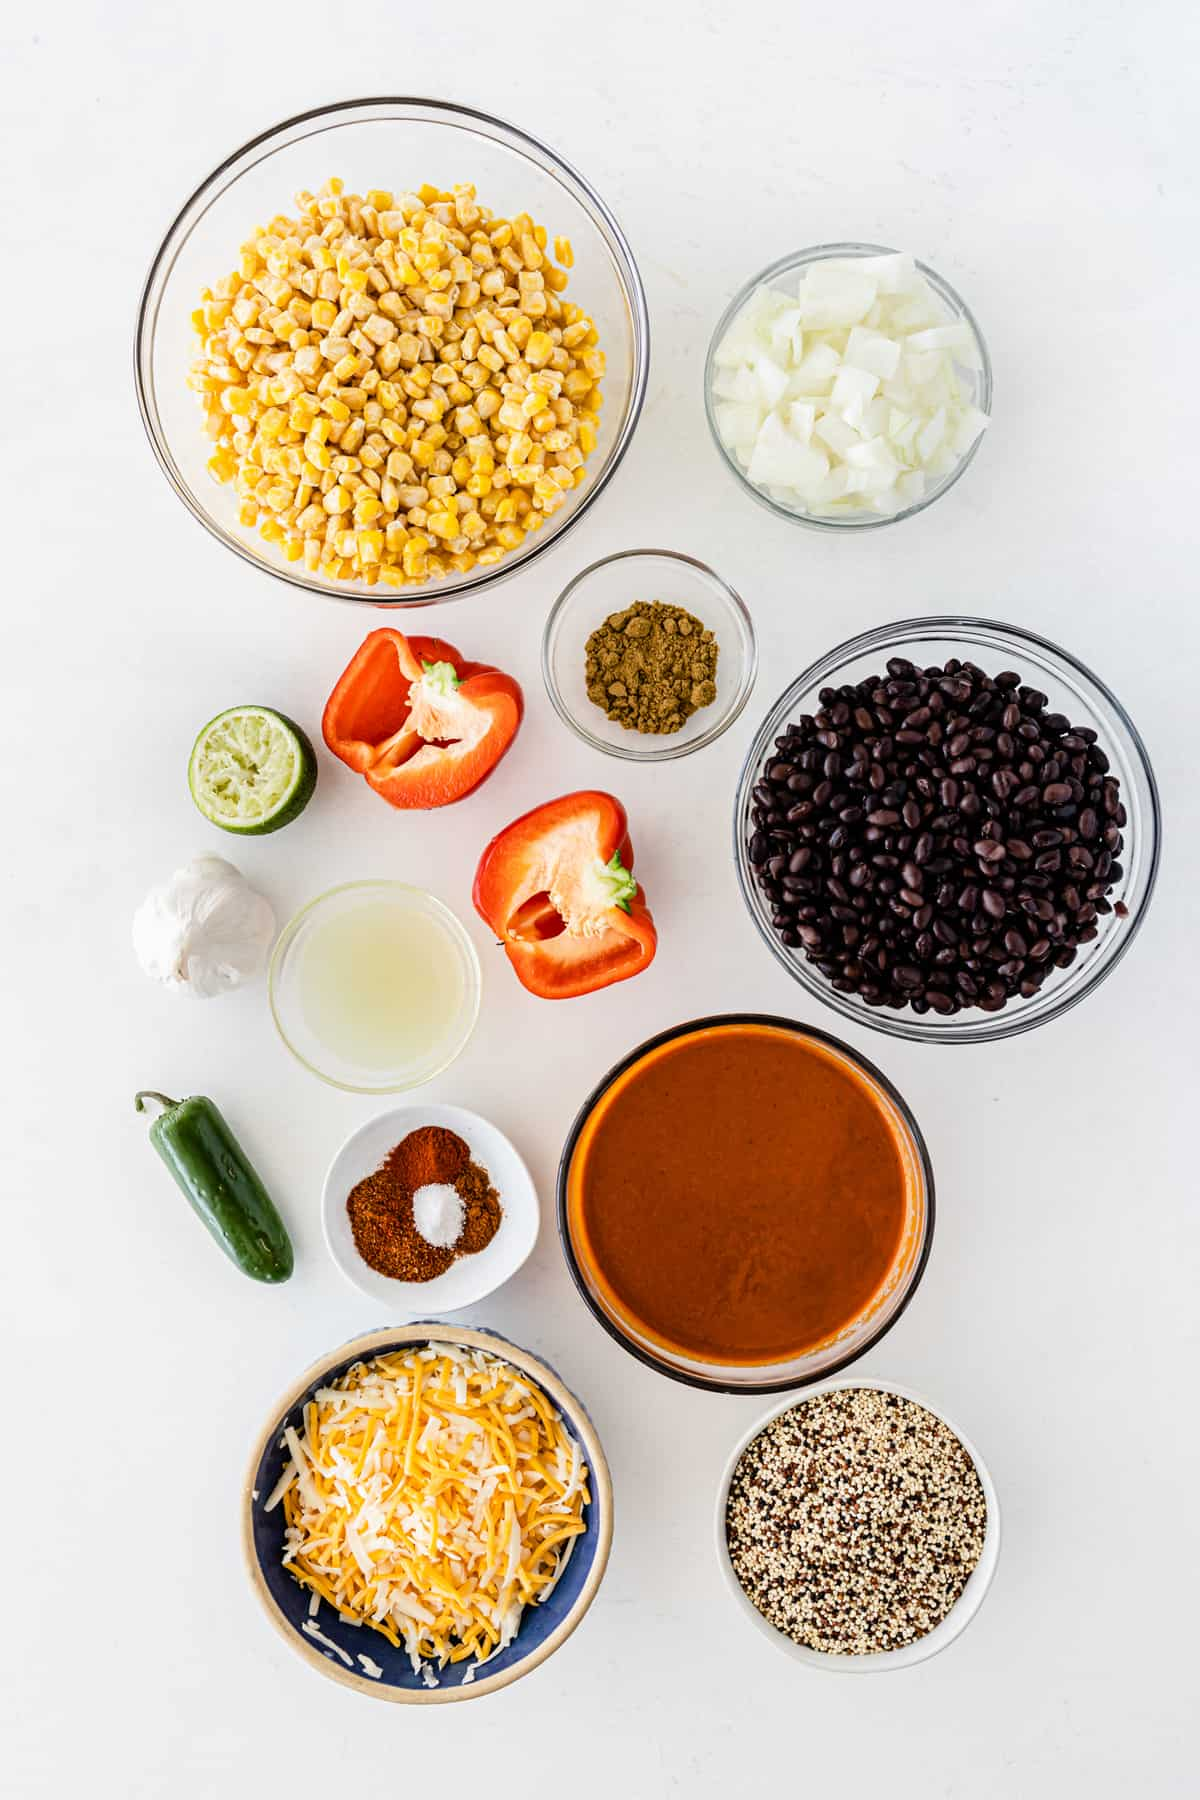 the ingredients for the quinoa casserole lined up on a white board